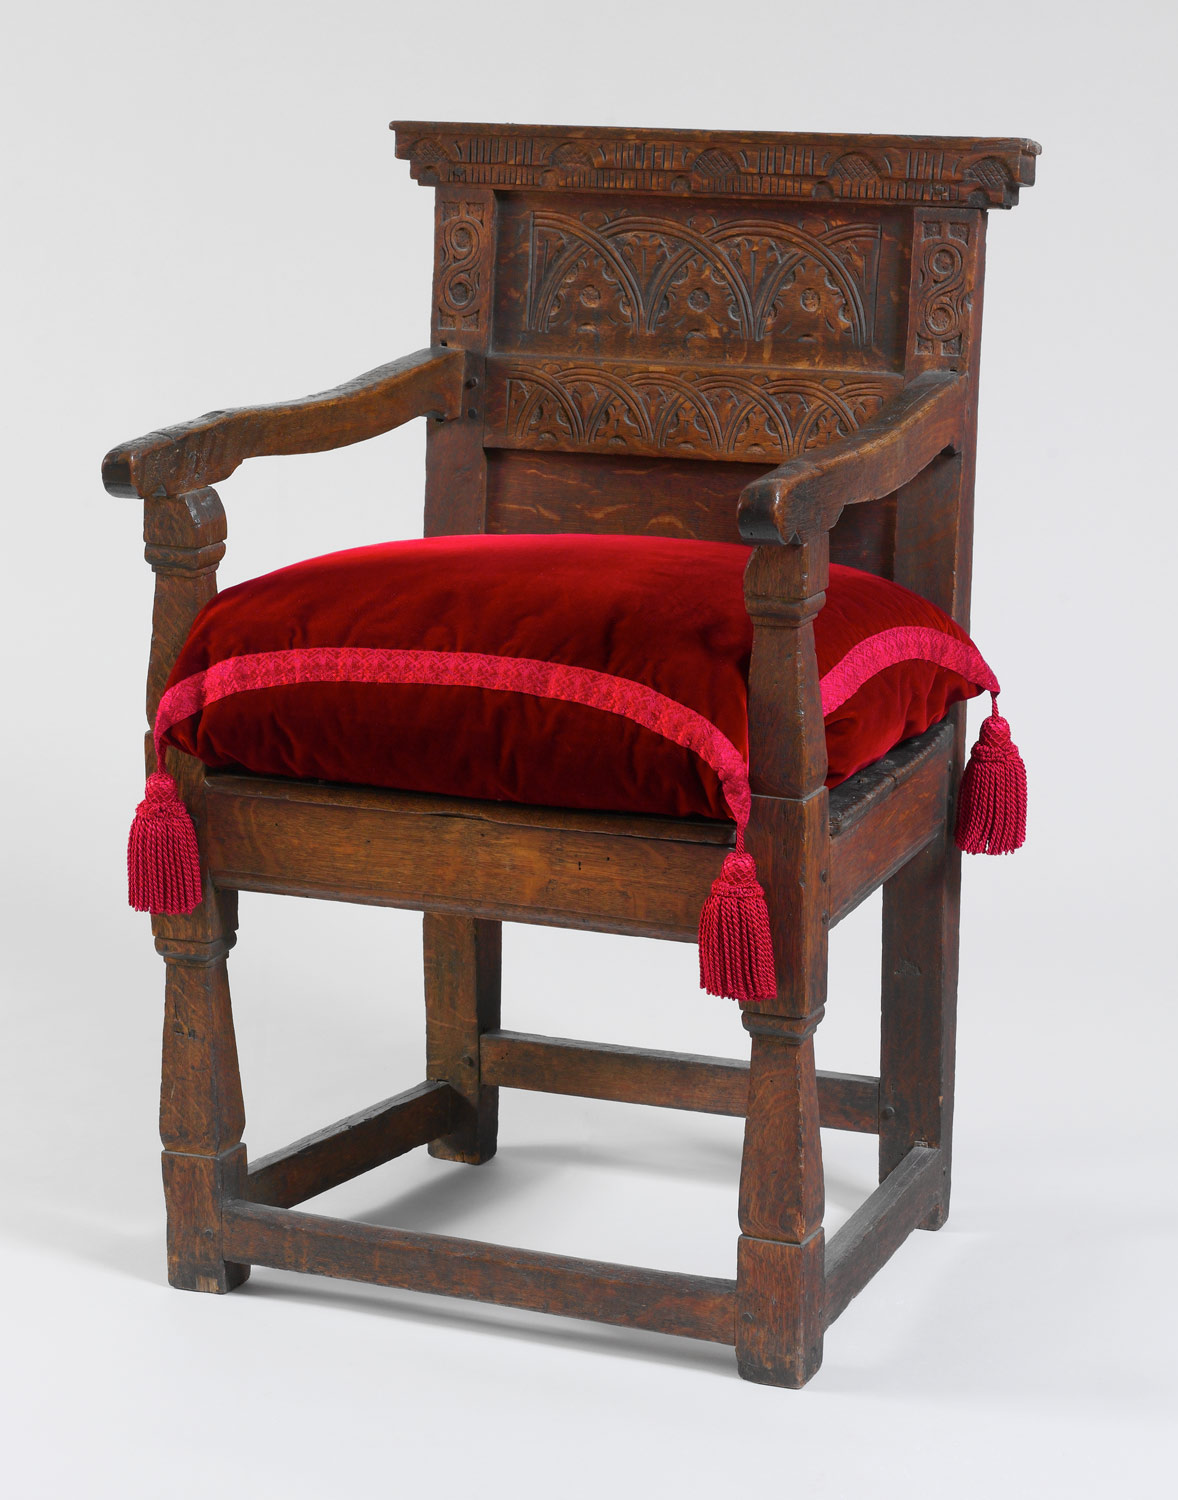 american furniture the seventeenth century and william joined armchair